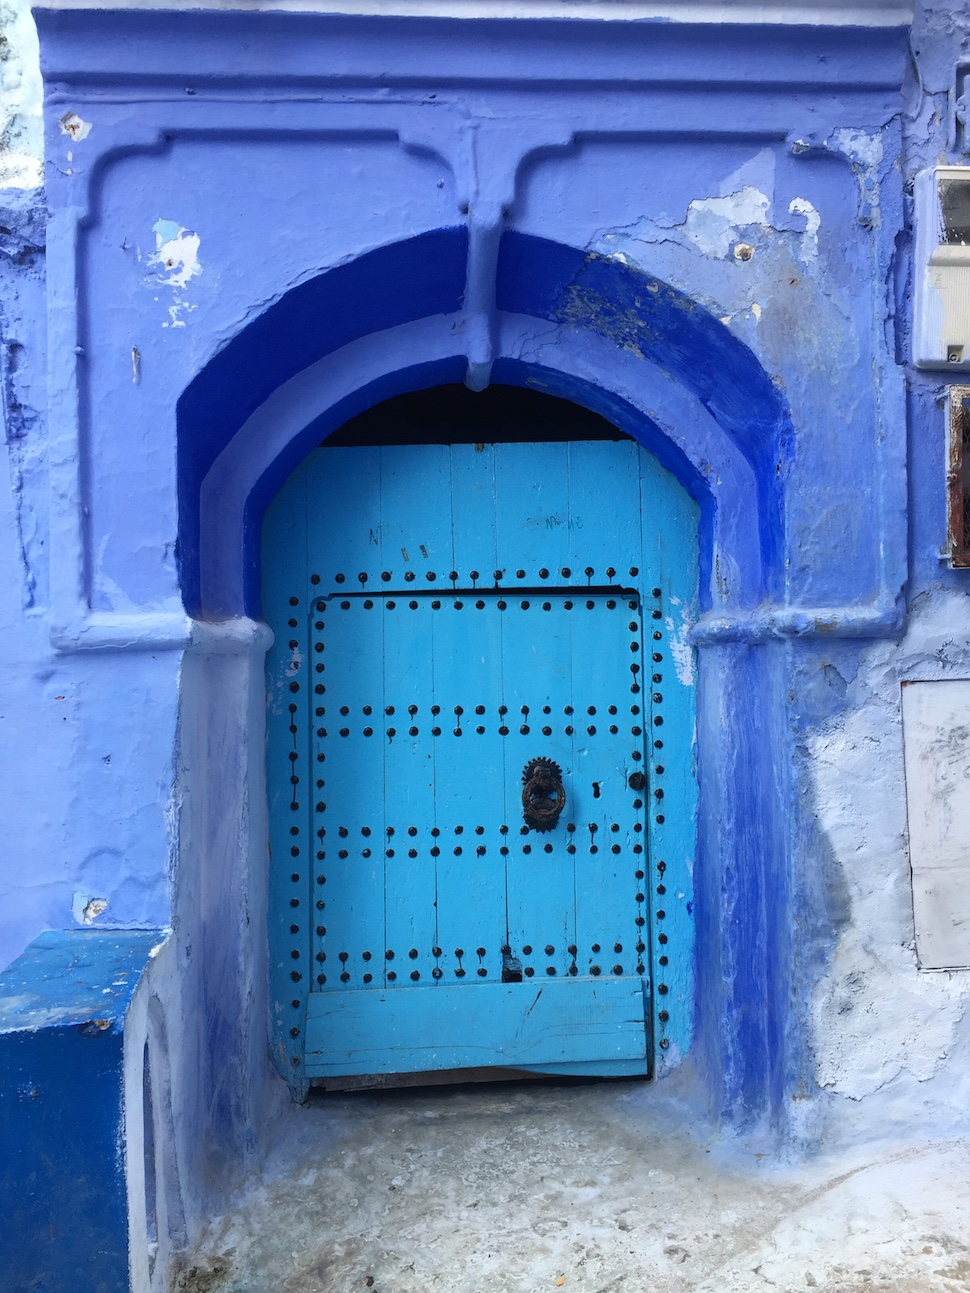 Morocco travel guide | Chefchaouen